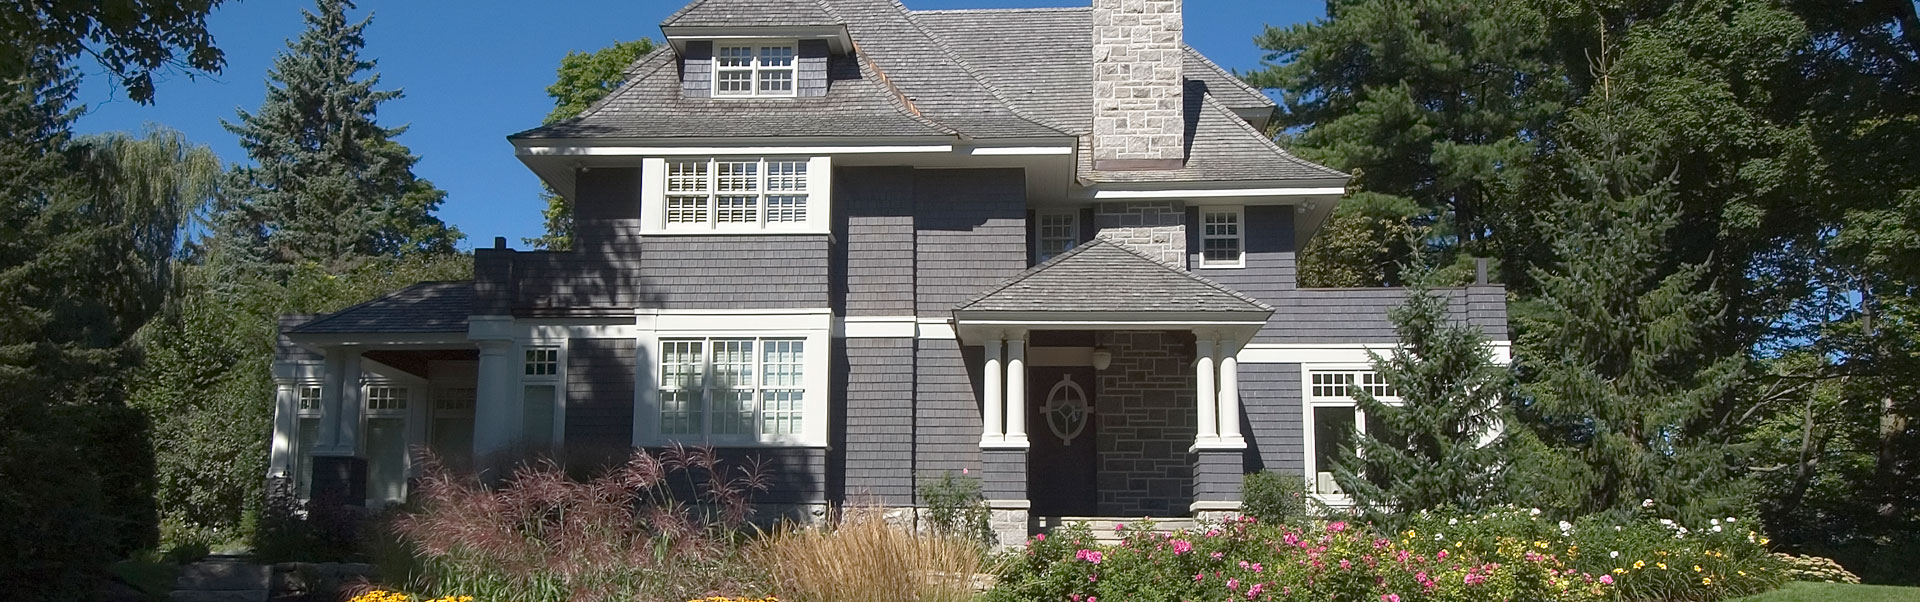 Leader In Cedar Shingles And Products